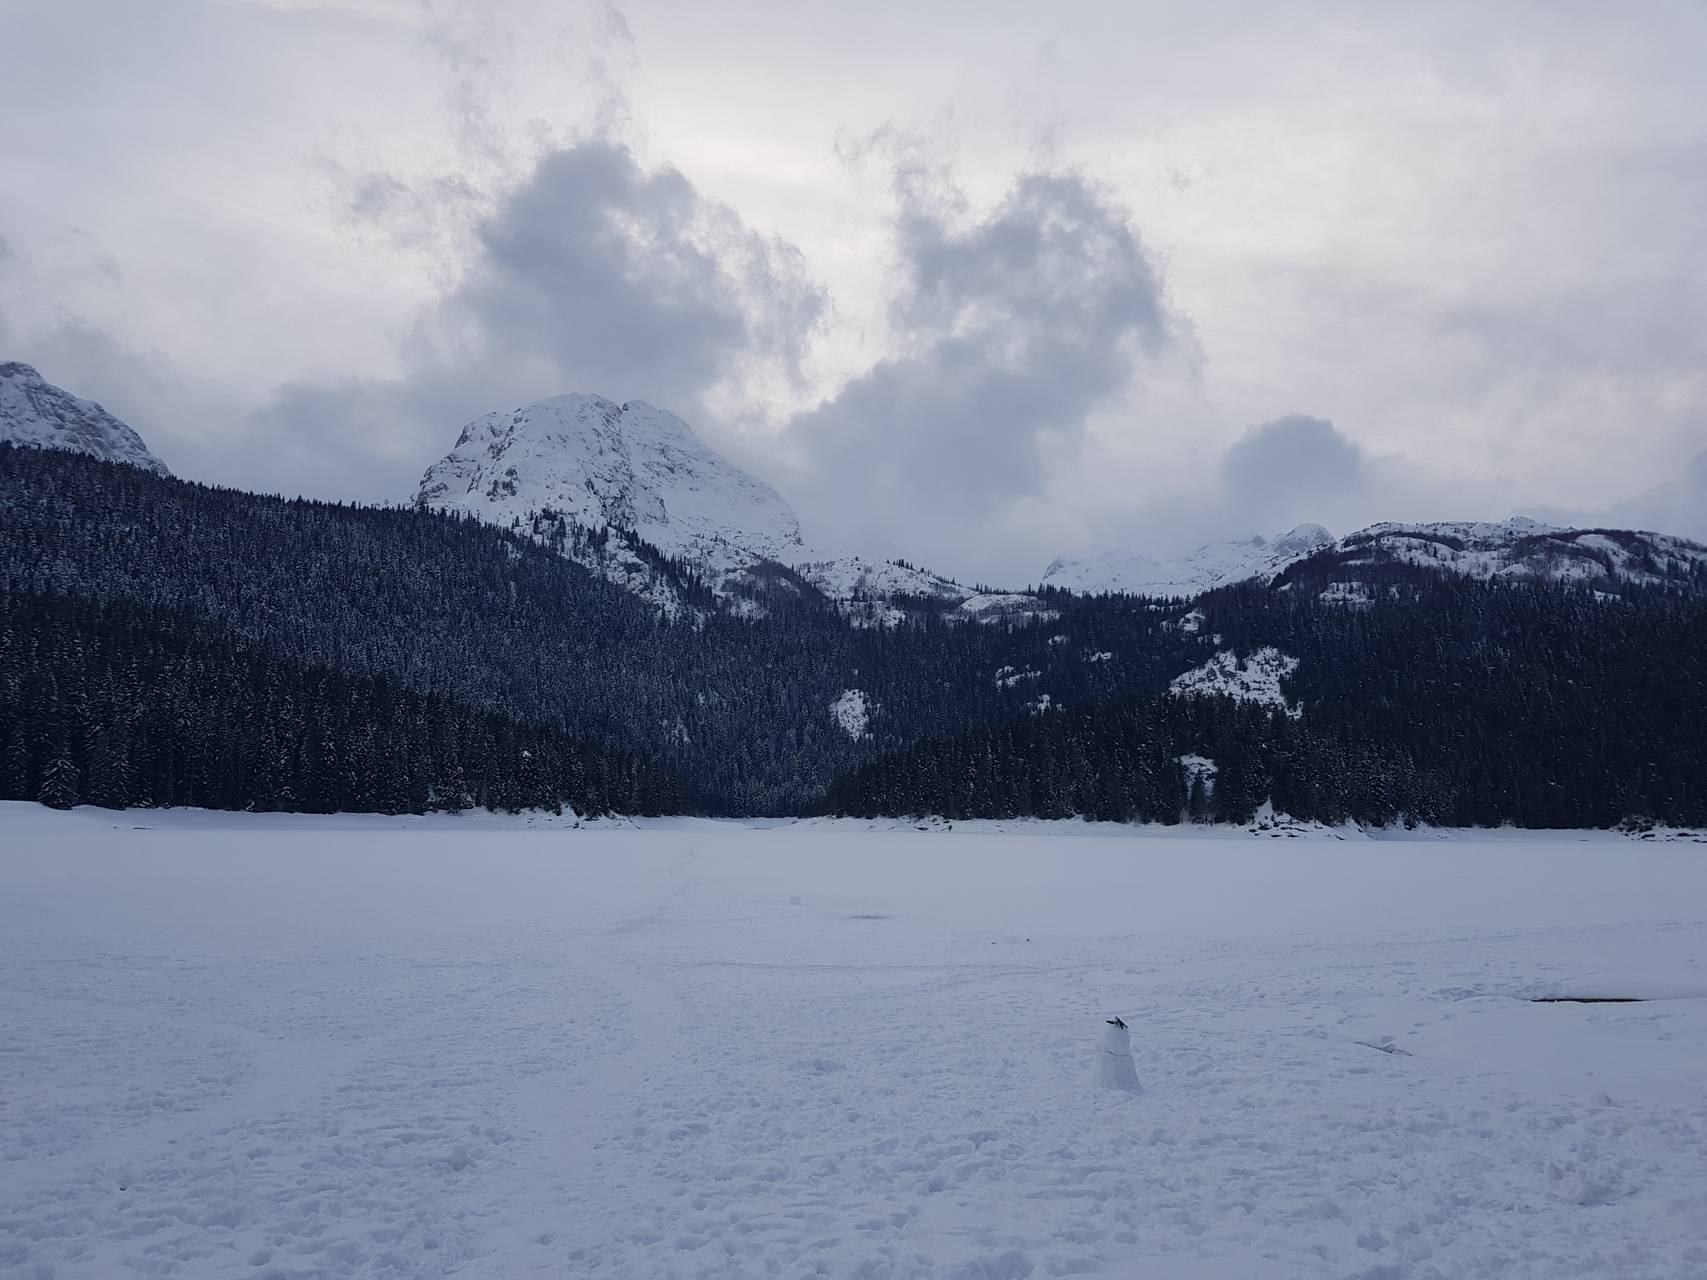 Snow over the lake